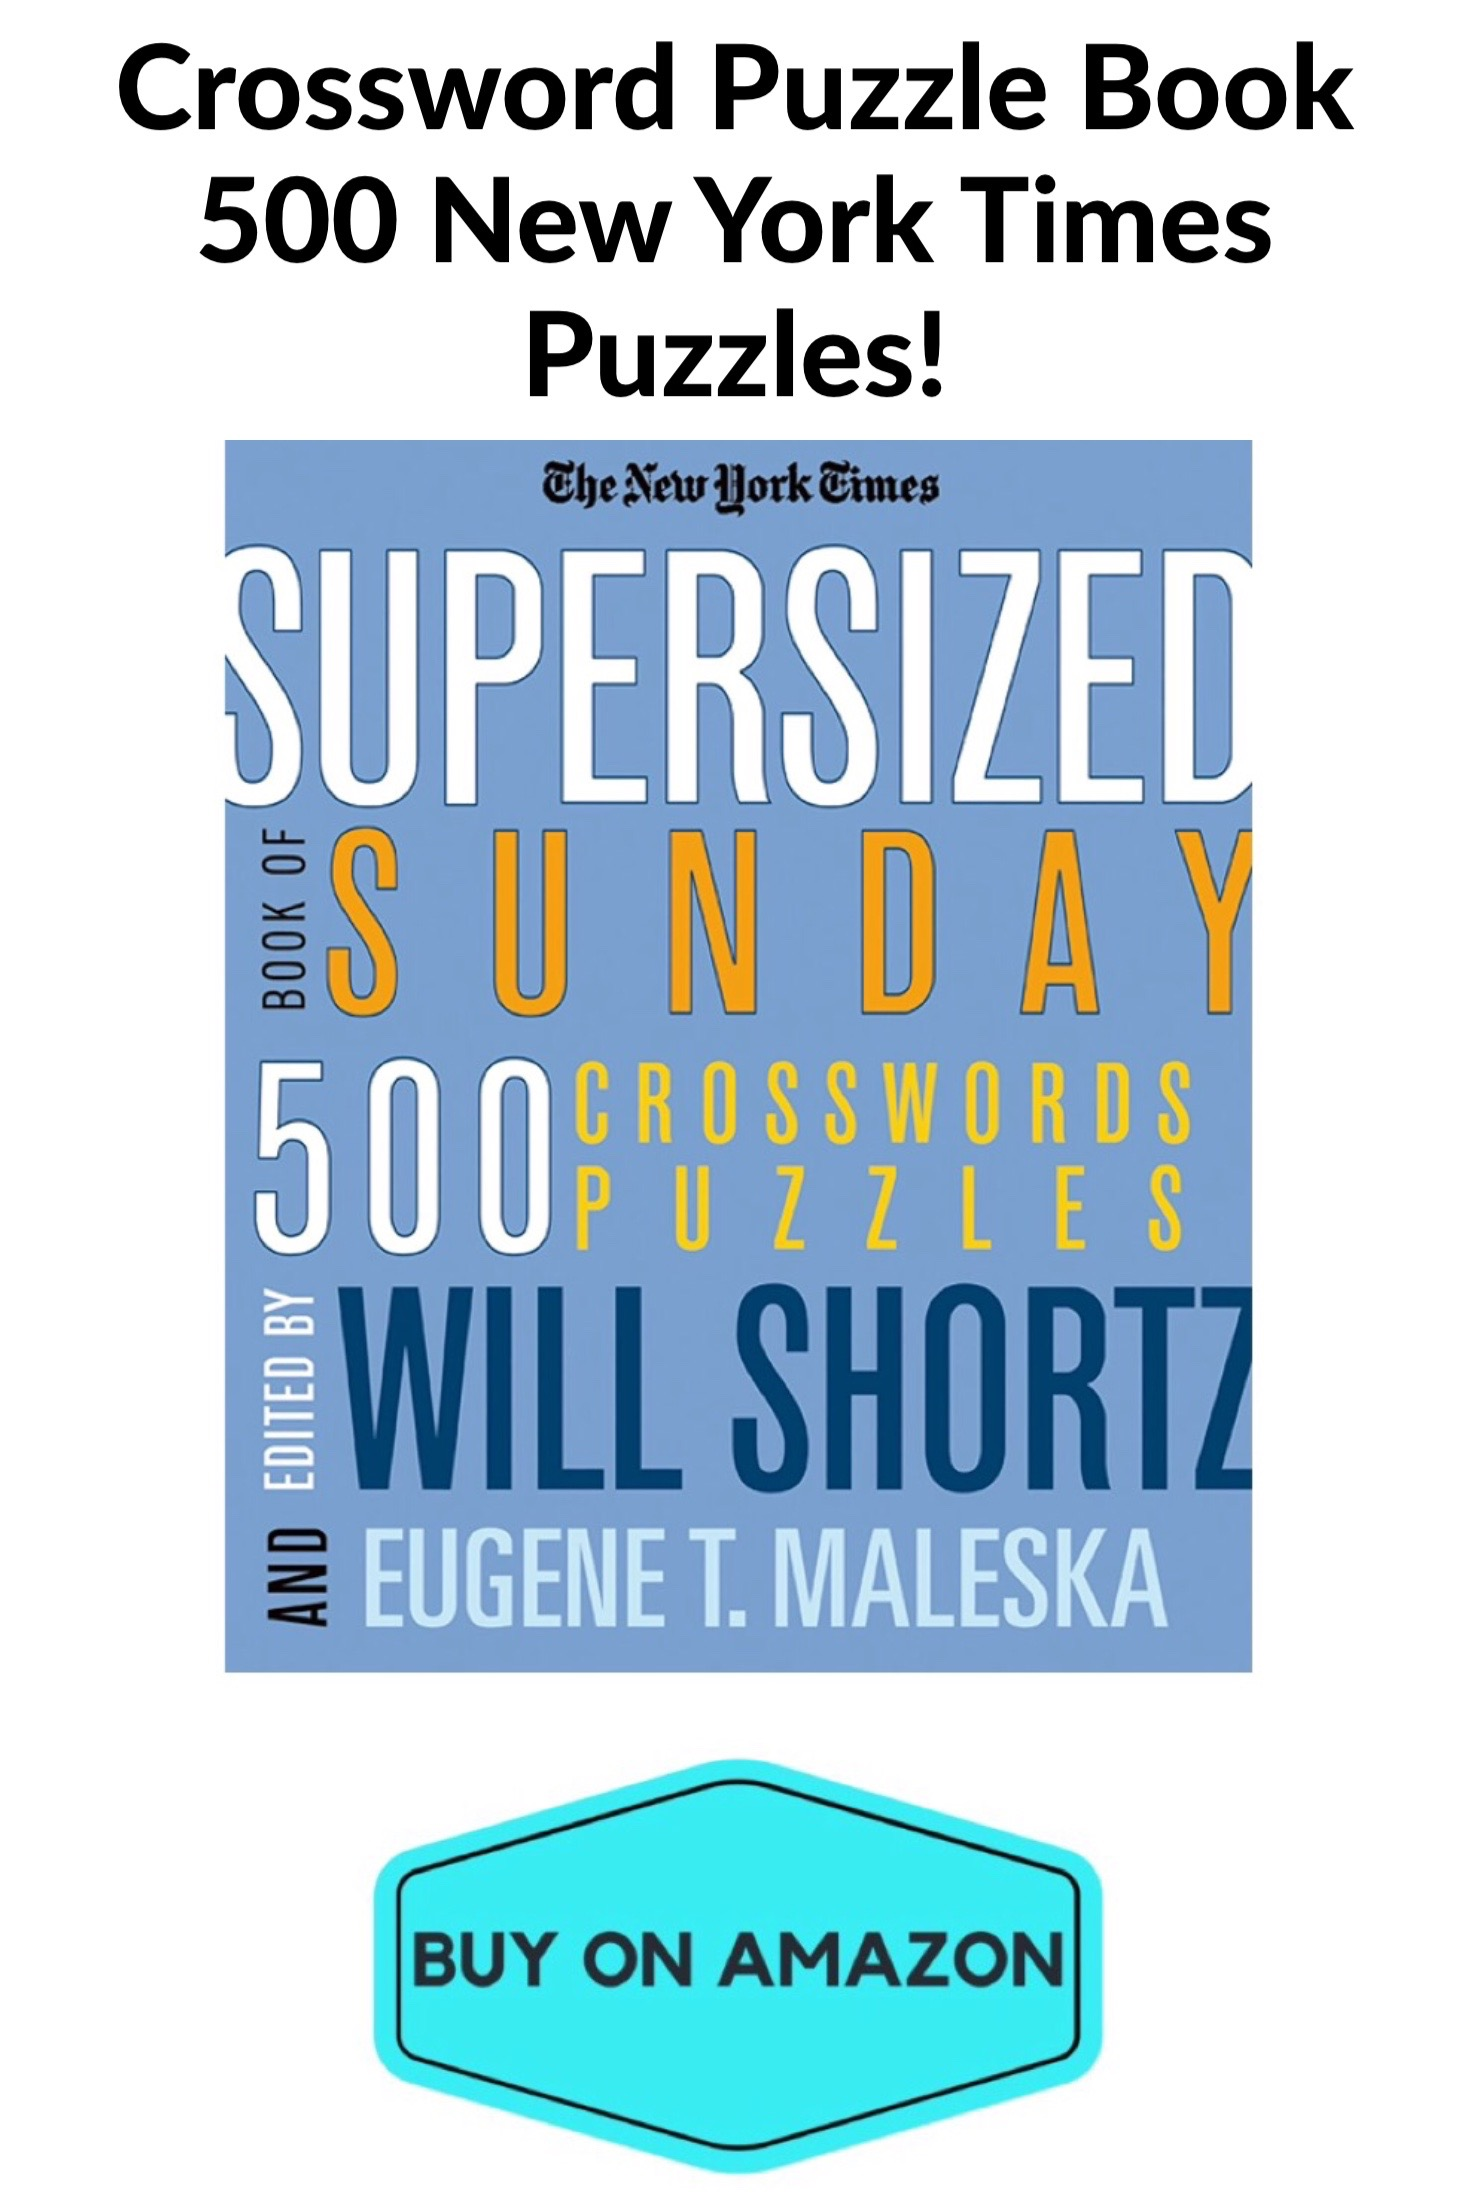 Crossword Puzzle Book: 500 New York Times Sunday Puzzles